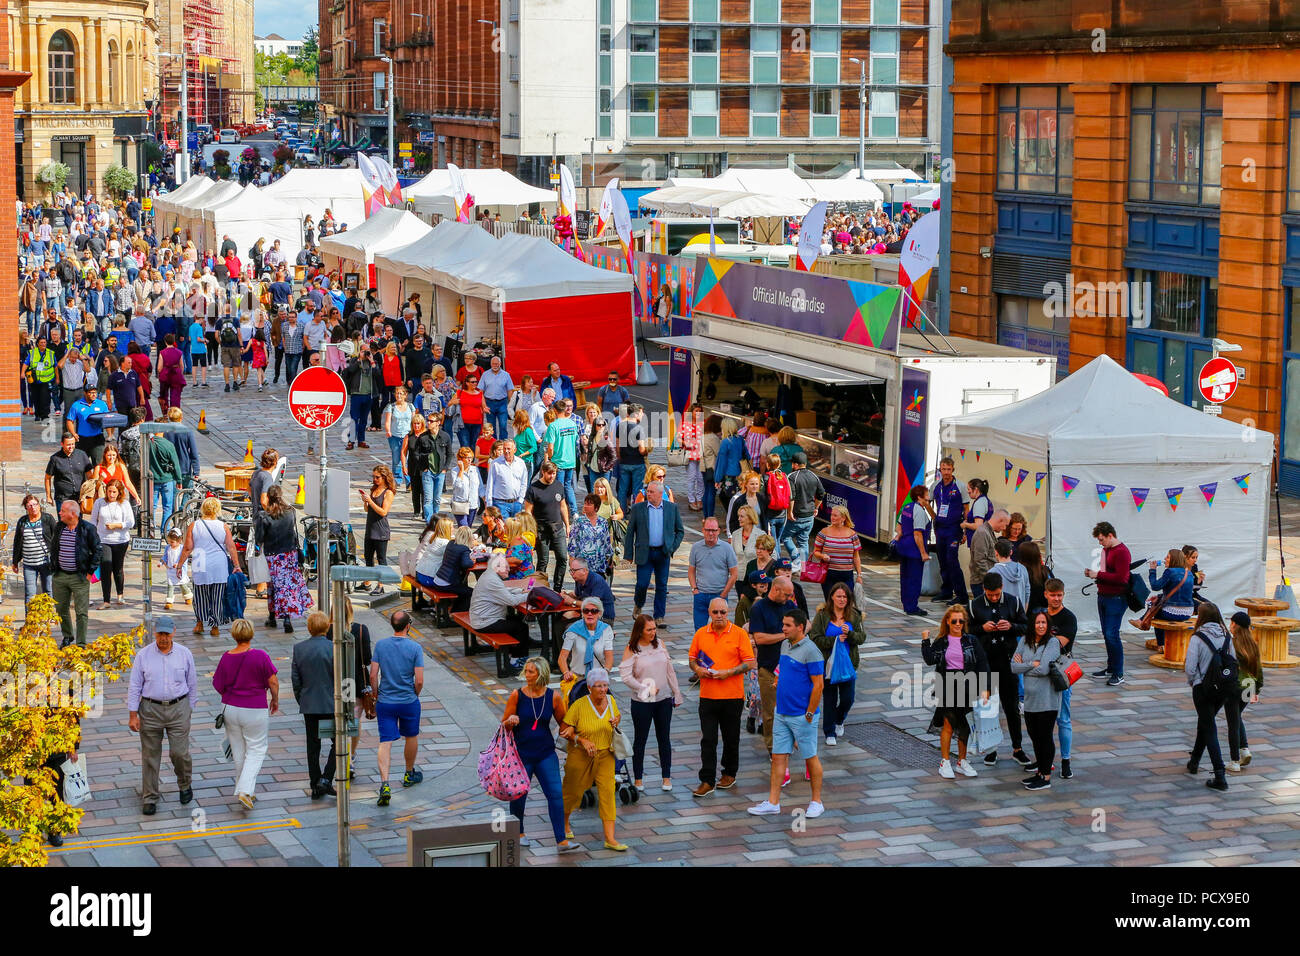 Glasgow, UK, 4 Aug 2018. On the first day of the Merchant city festival, thousands took advantage of the warm summer evening to enjoy the street artists, musicians, dancers and food stalls. The festival, an annual event, is running at the same time as the European Games and is due to finish on 12 August - Stock Image